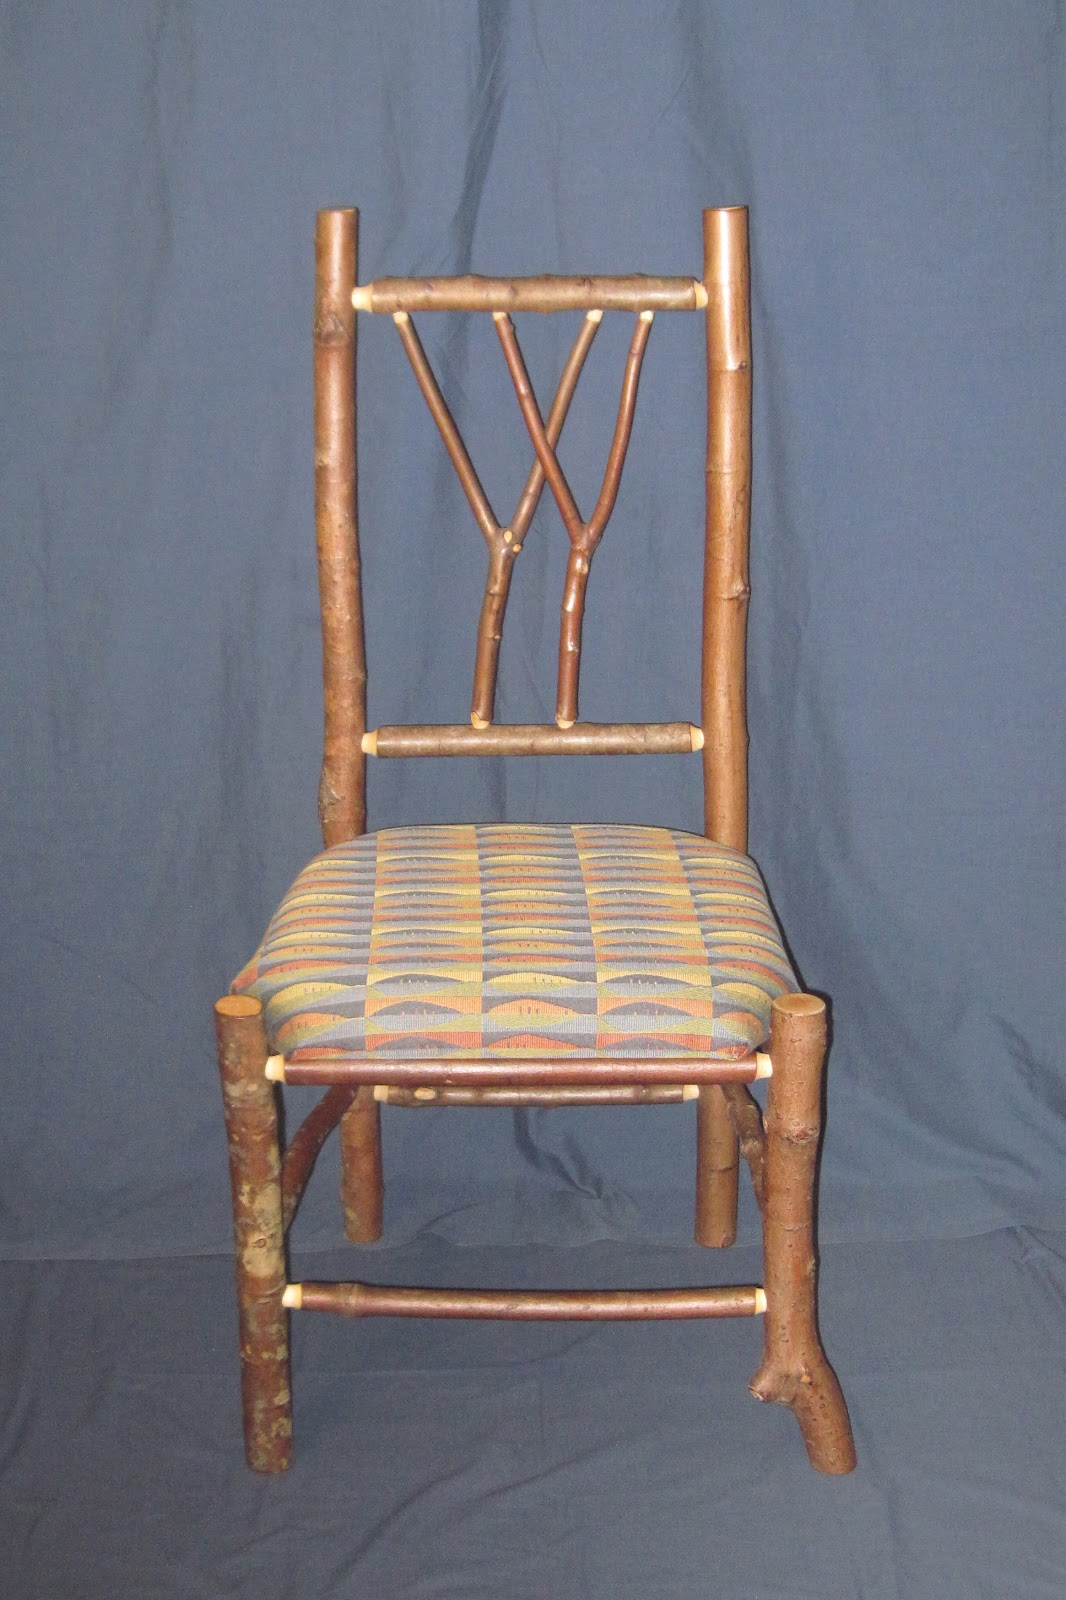 Native Twig Furniture Chairs And Barstools